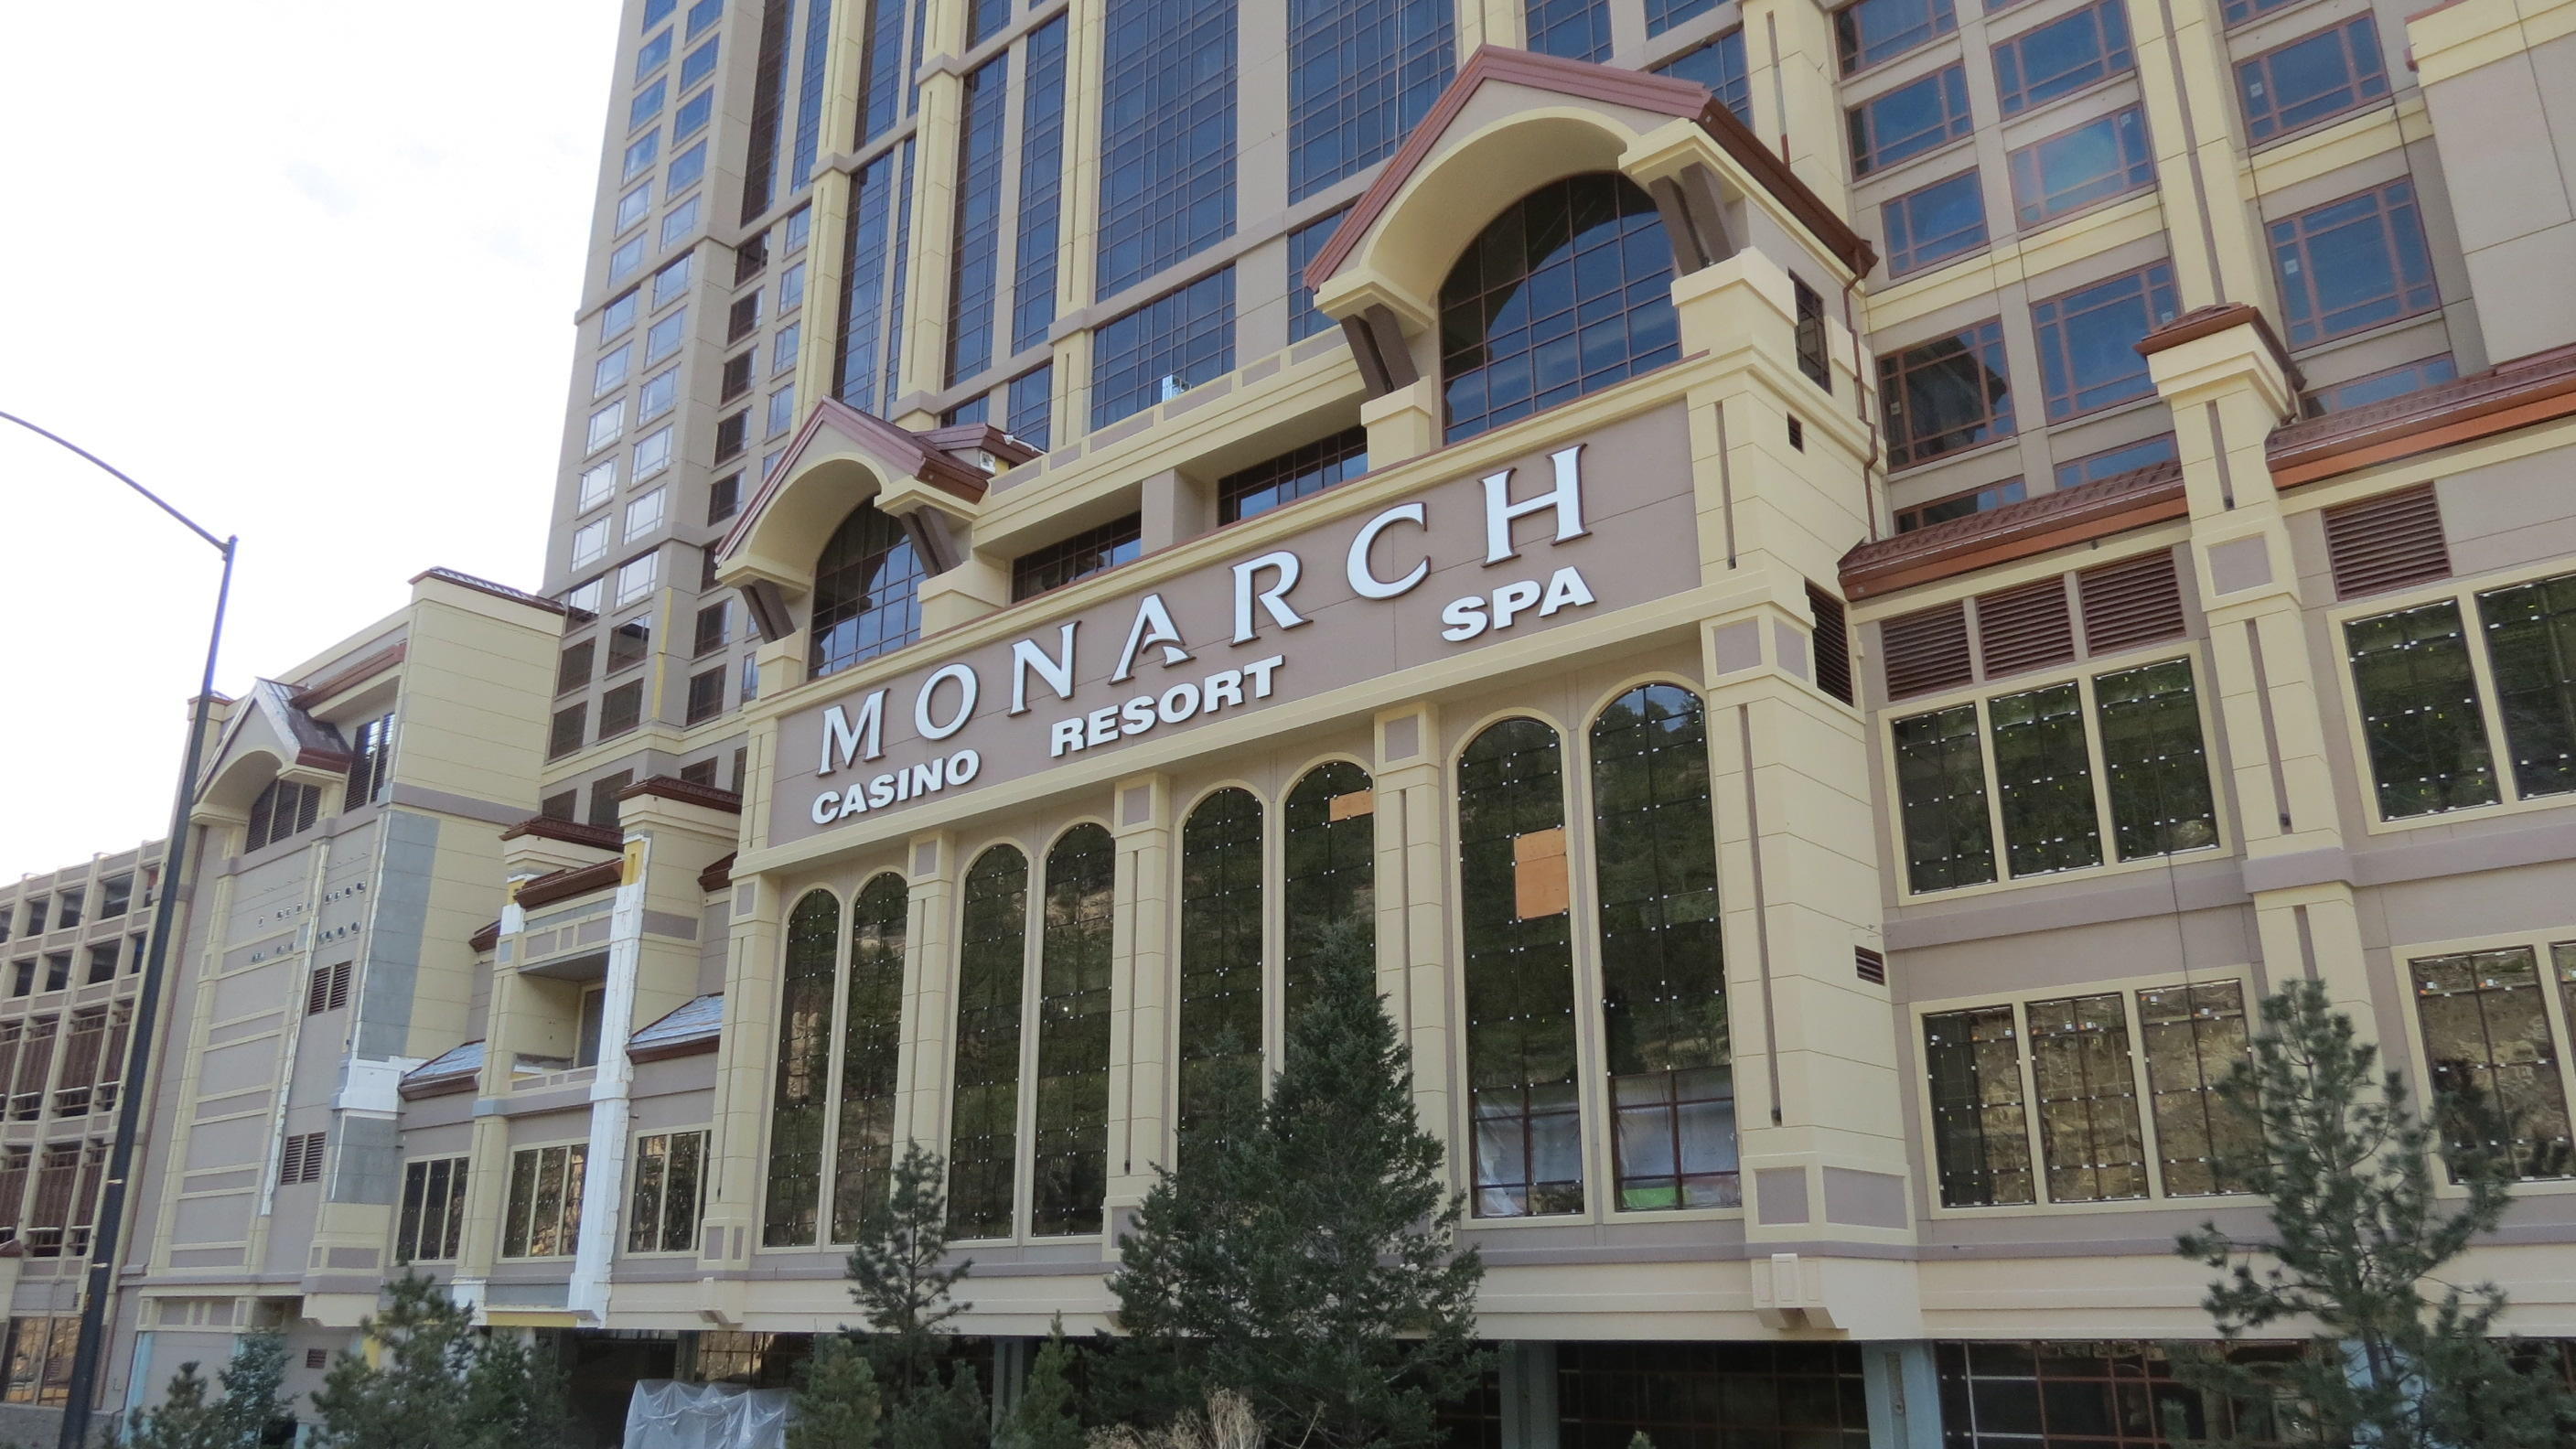 MONARCH CASINO